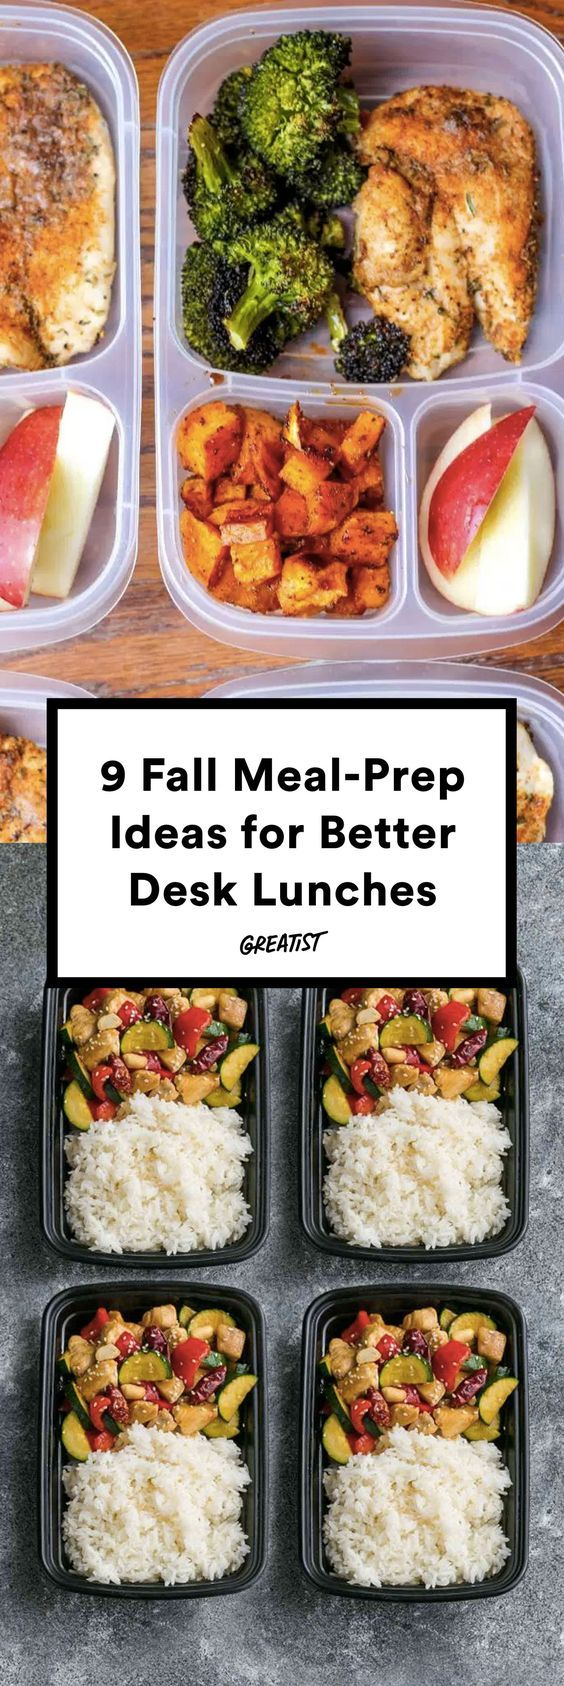 It's time to get back on the healthy train. #greatist https://greatist.com/eat/meal-prep-lunches-to-make-in-fall